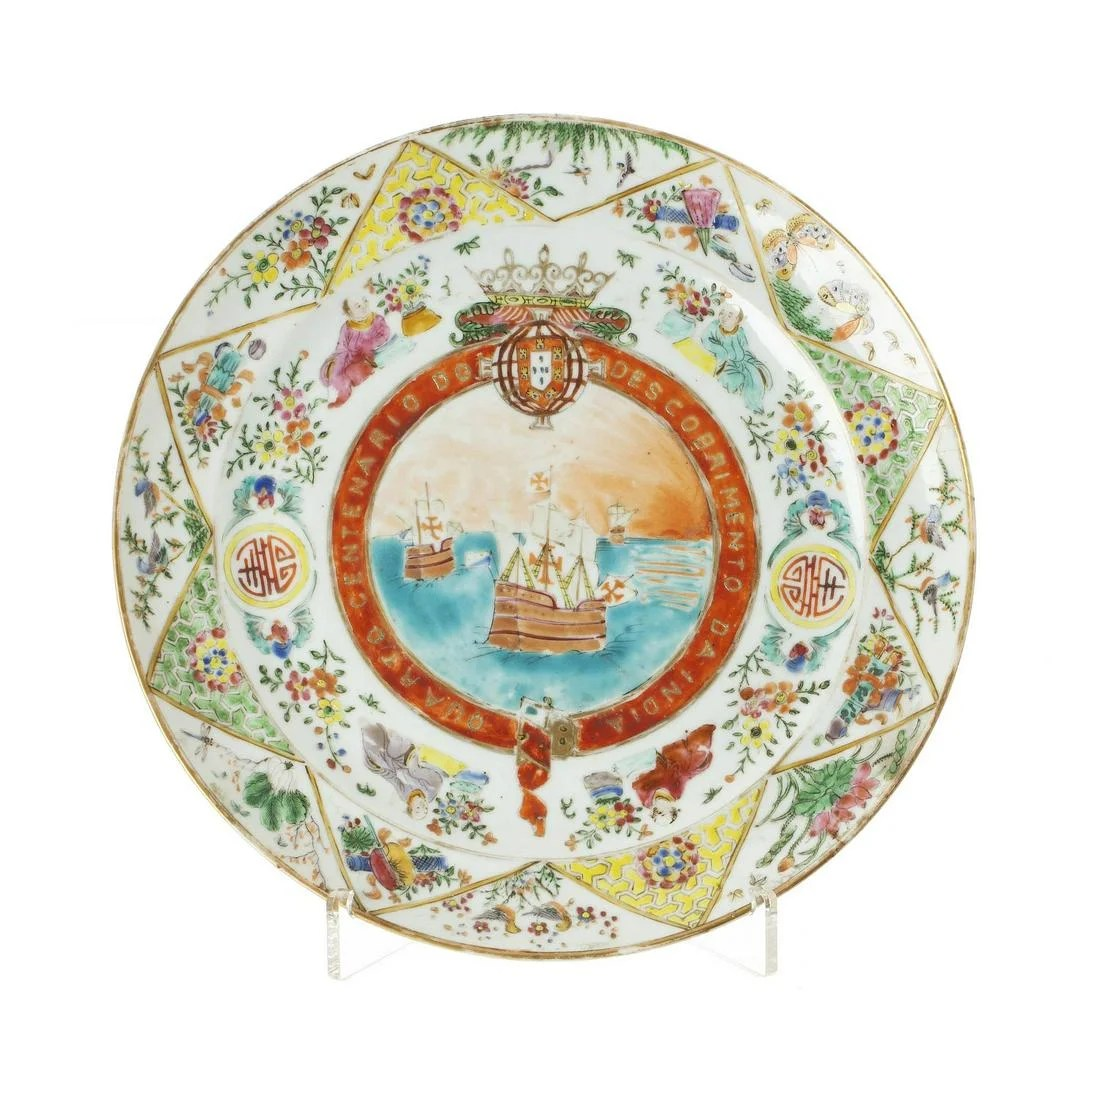 Chinese porcelain plate 'Fourth Centenary of the